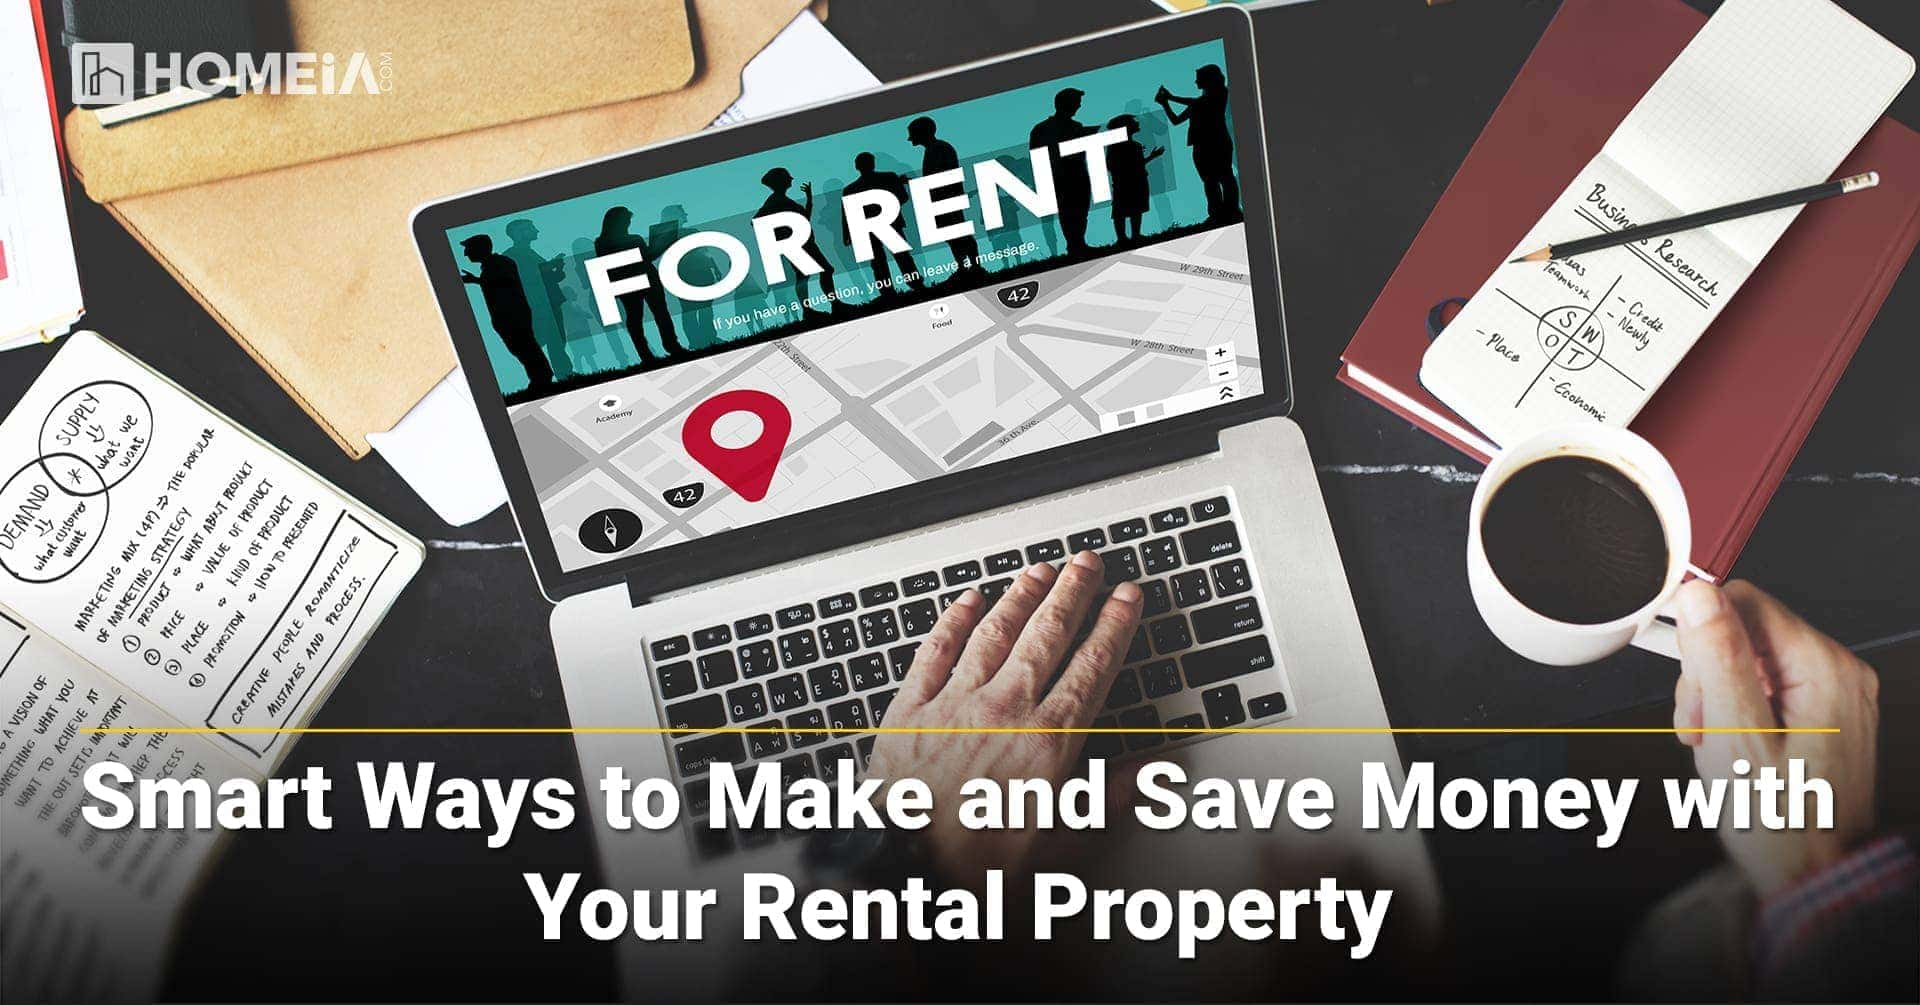 10 Smart Ways to Make and Save Money with Your Rental Property